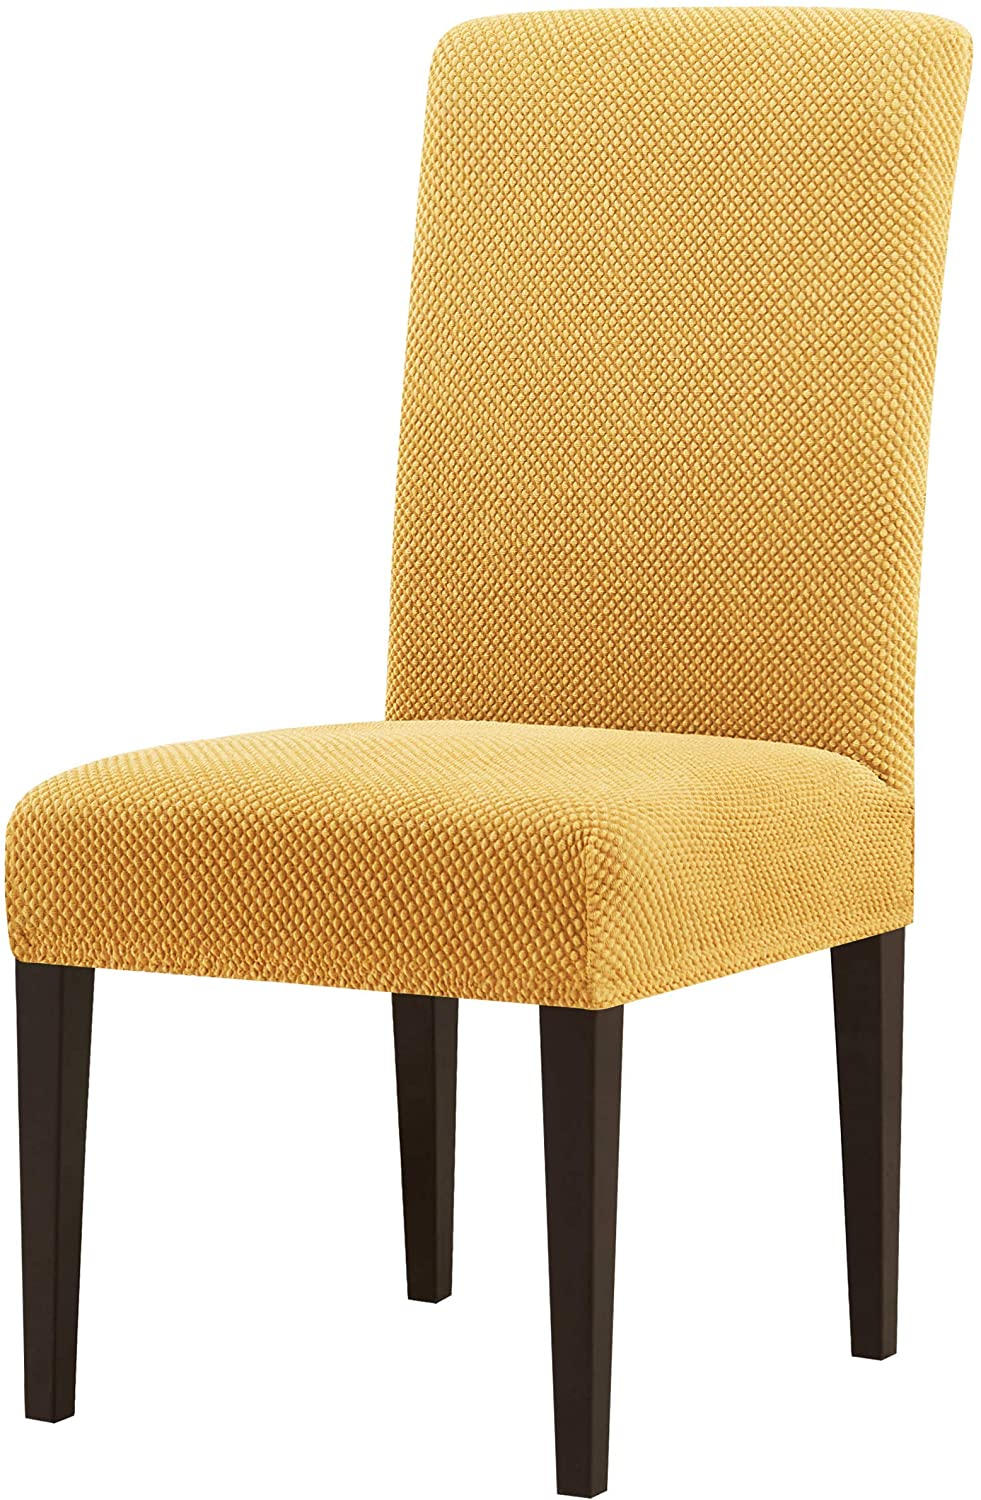 Review of subrtex Dining Room Chair Slipcovers Jacquard Parsons Chair Covers